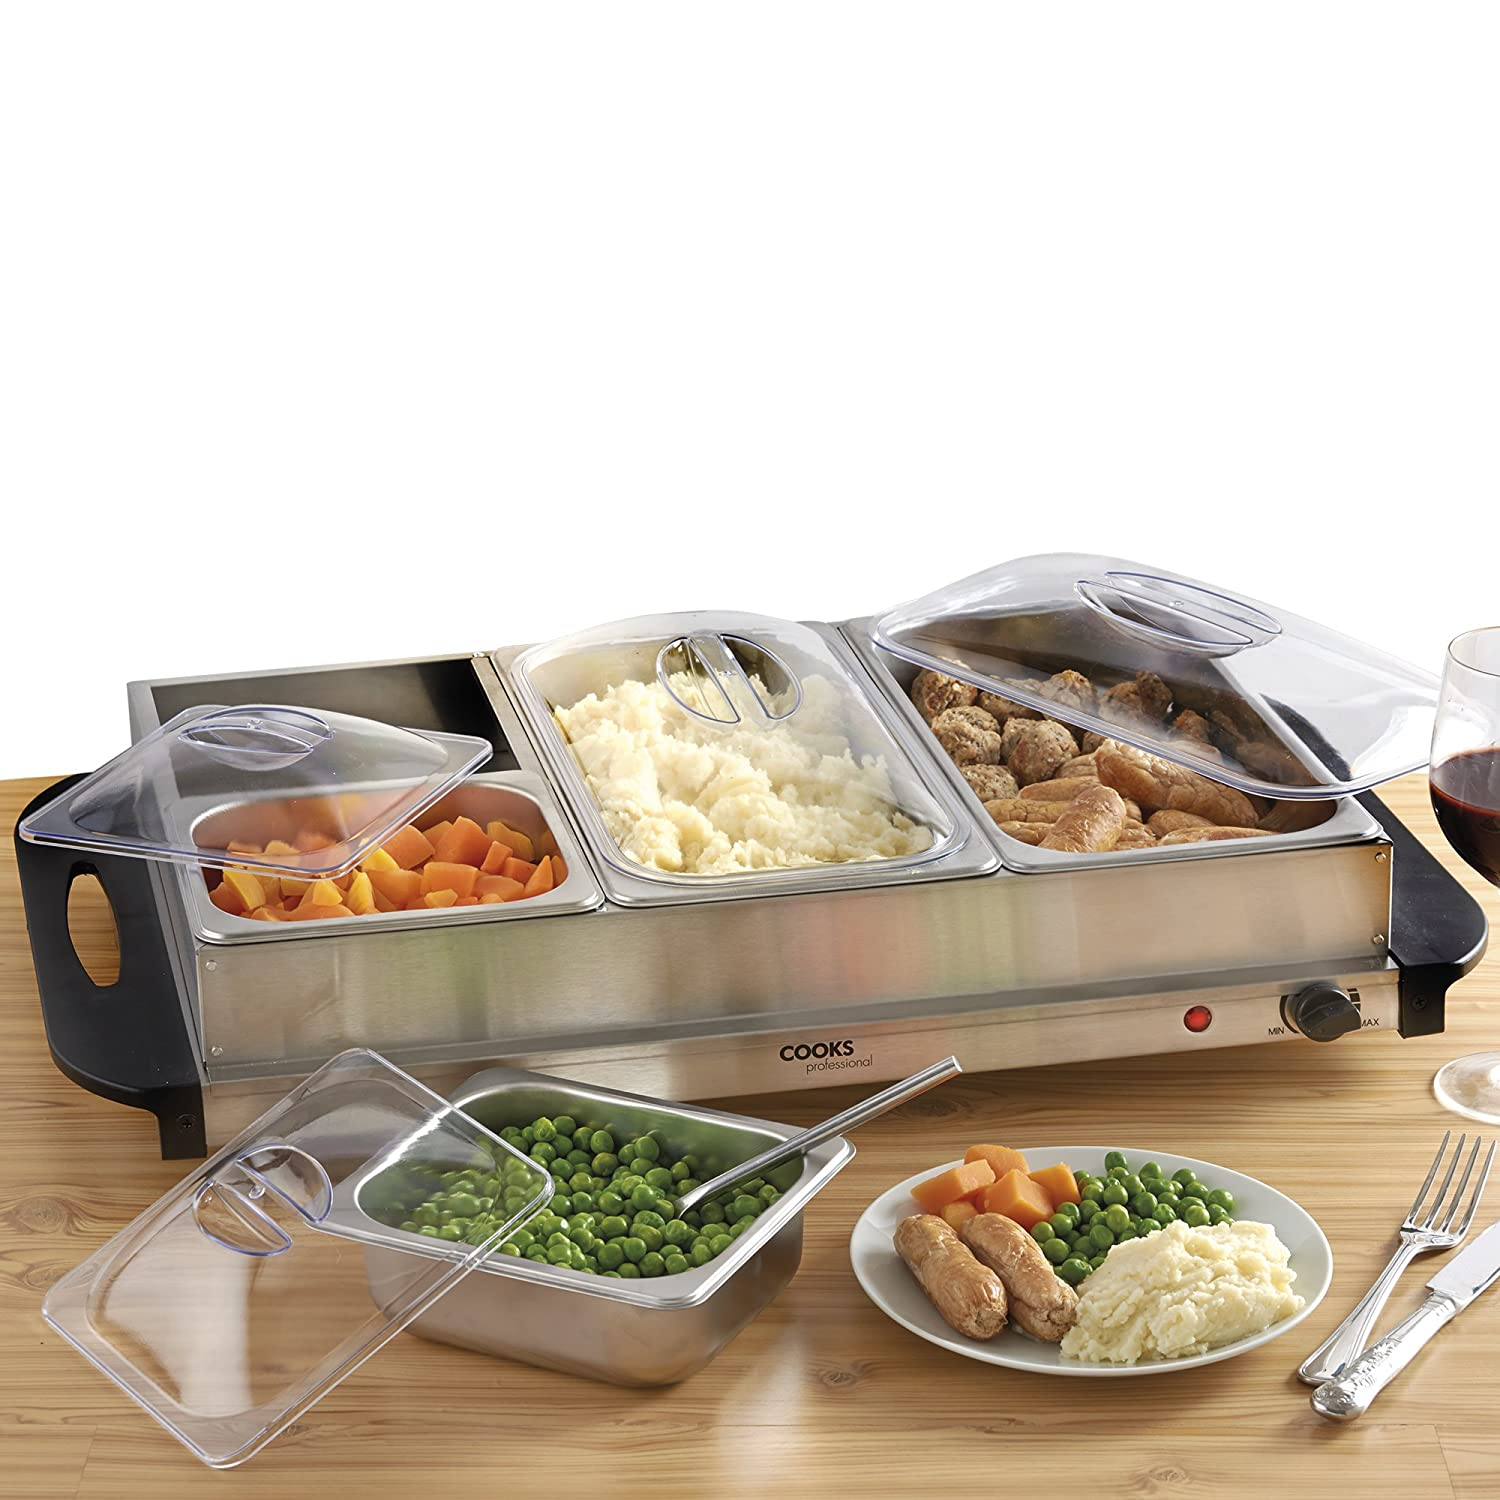 Buffet Server Hotplate Food Warmer Hostess with 4 Removable Sections & Adjustable Temperature Control, 300W by Cooks Professional (Buffet Warmer) Clifford James